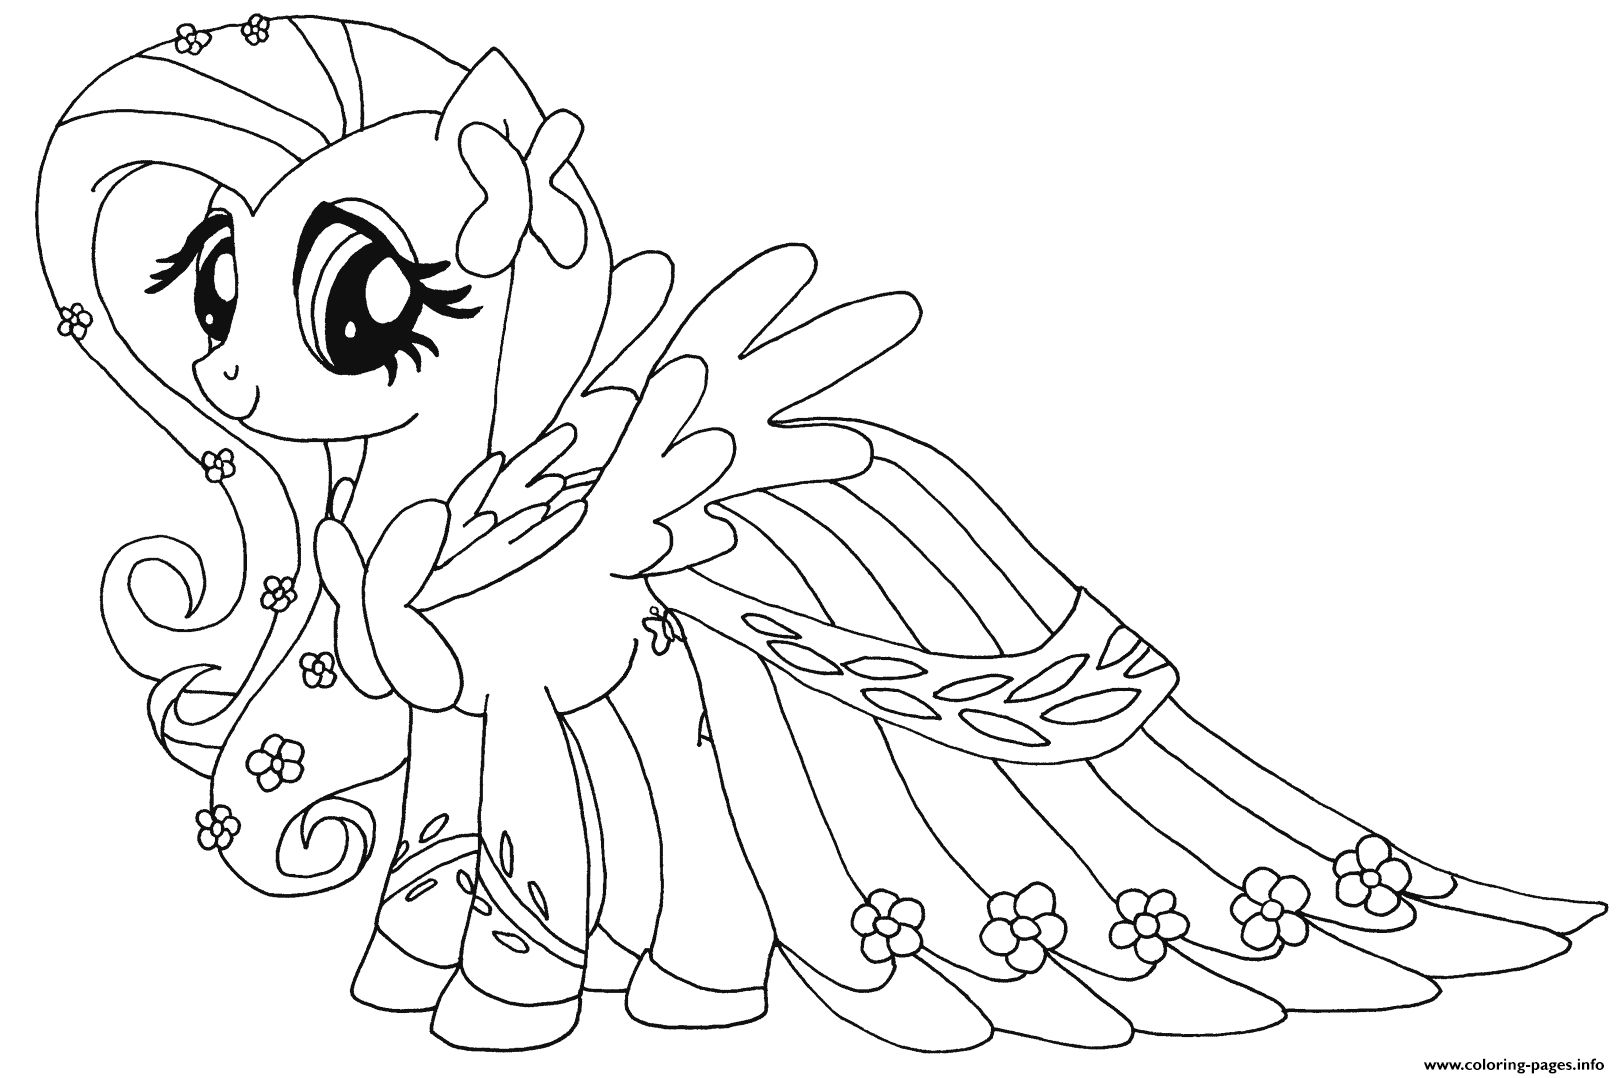 My Little Pony Coloring Fluttershy My Little Pony Coloring Fluttershy My Little Pony Equ Unicornio Para Colorir Desenhos Pra Colorir Desenhos Impressionantes